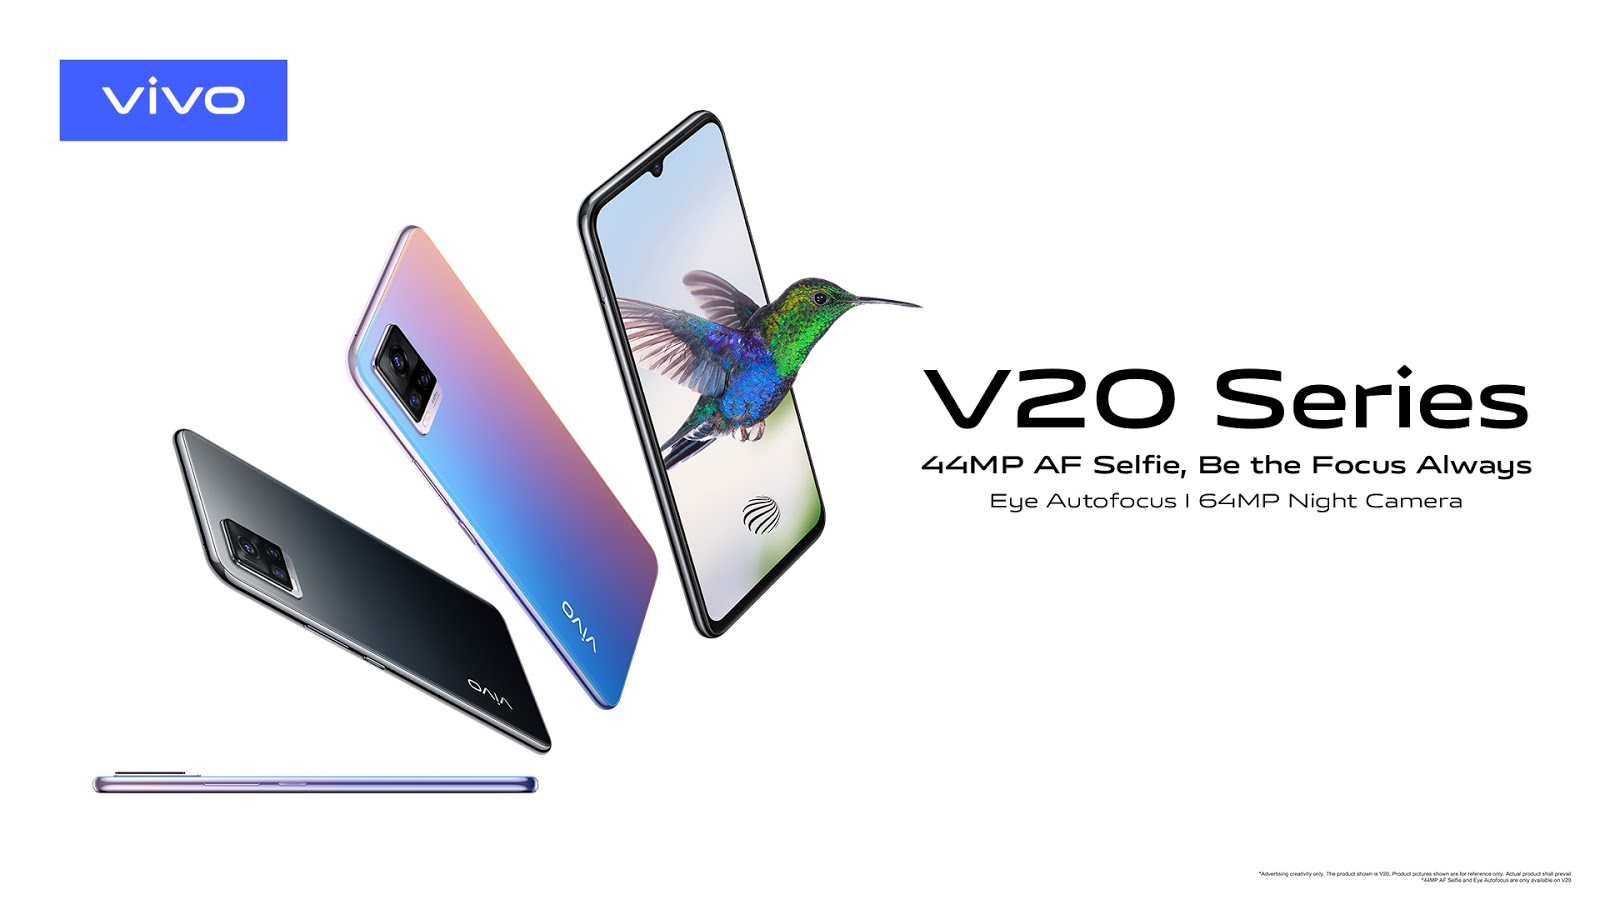 vivo Launches V20 in Pakistan, 44MP Eye Autofocus, 7.38mm Ultra Sleek and 64MP Night Camera